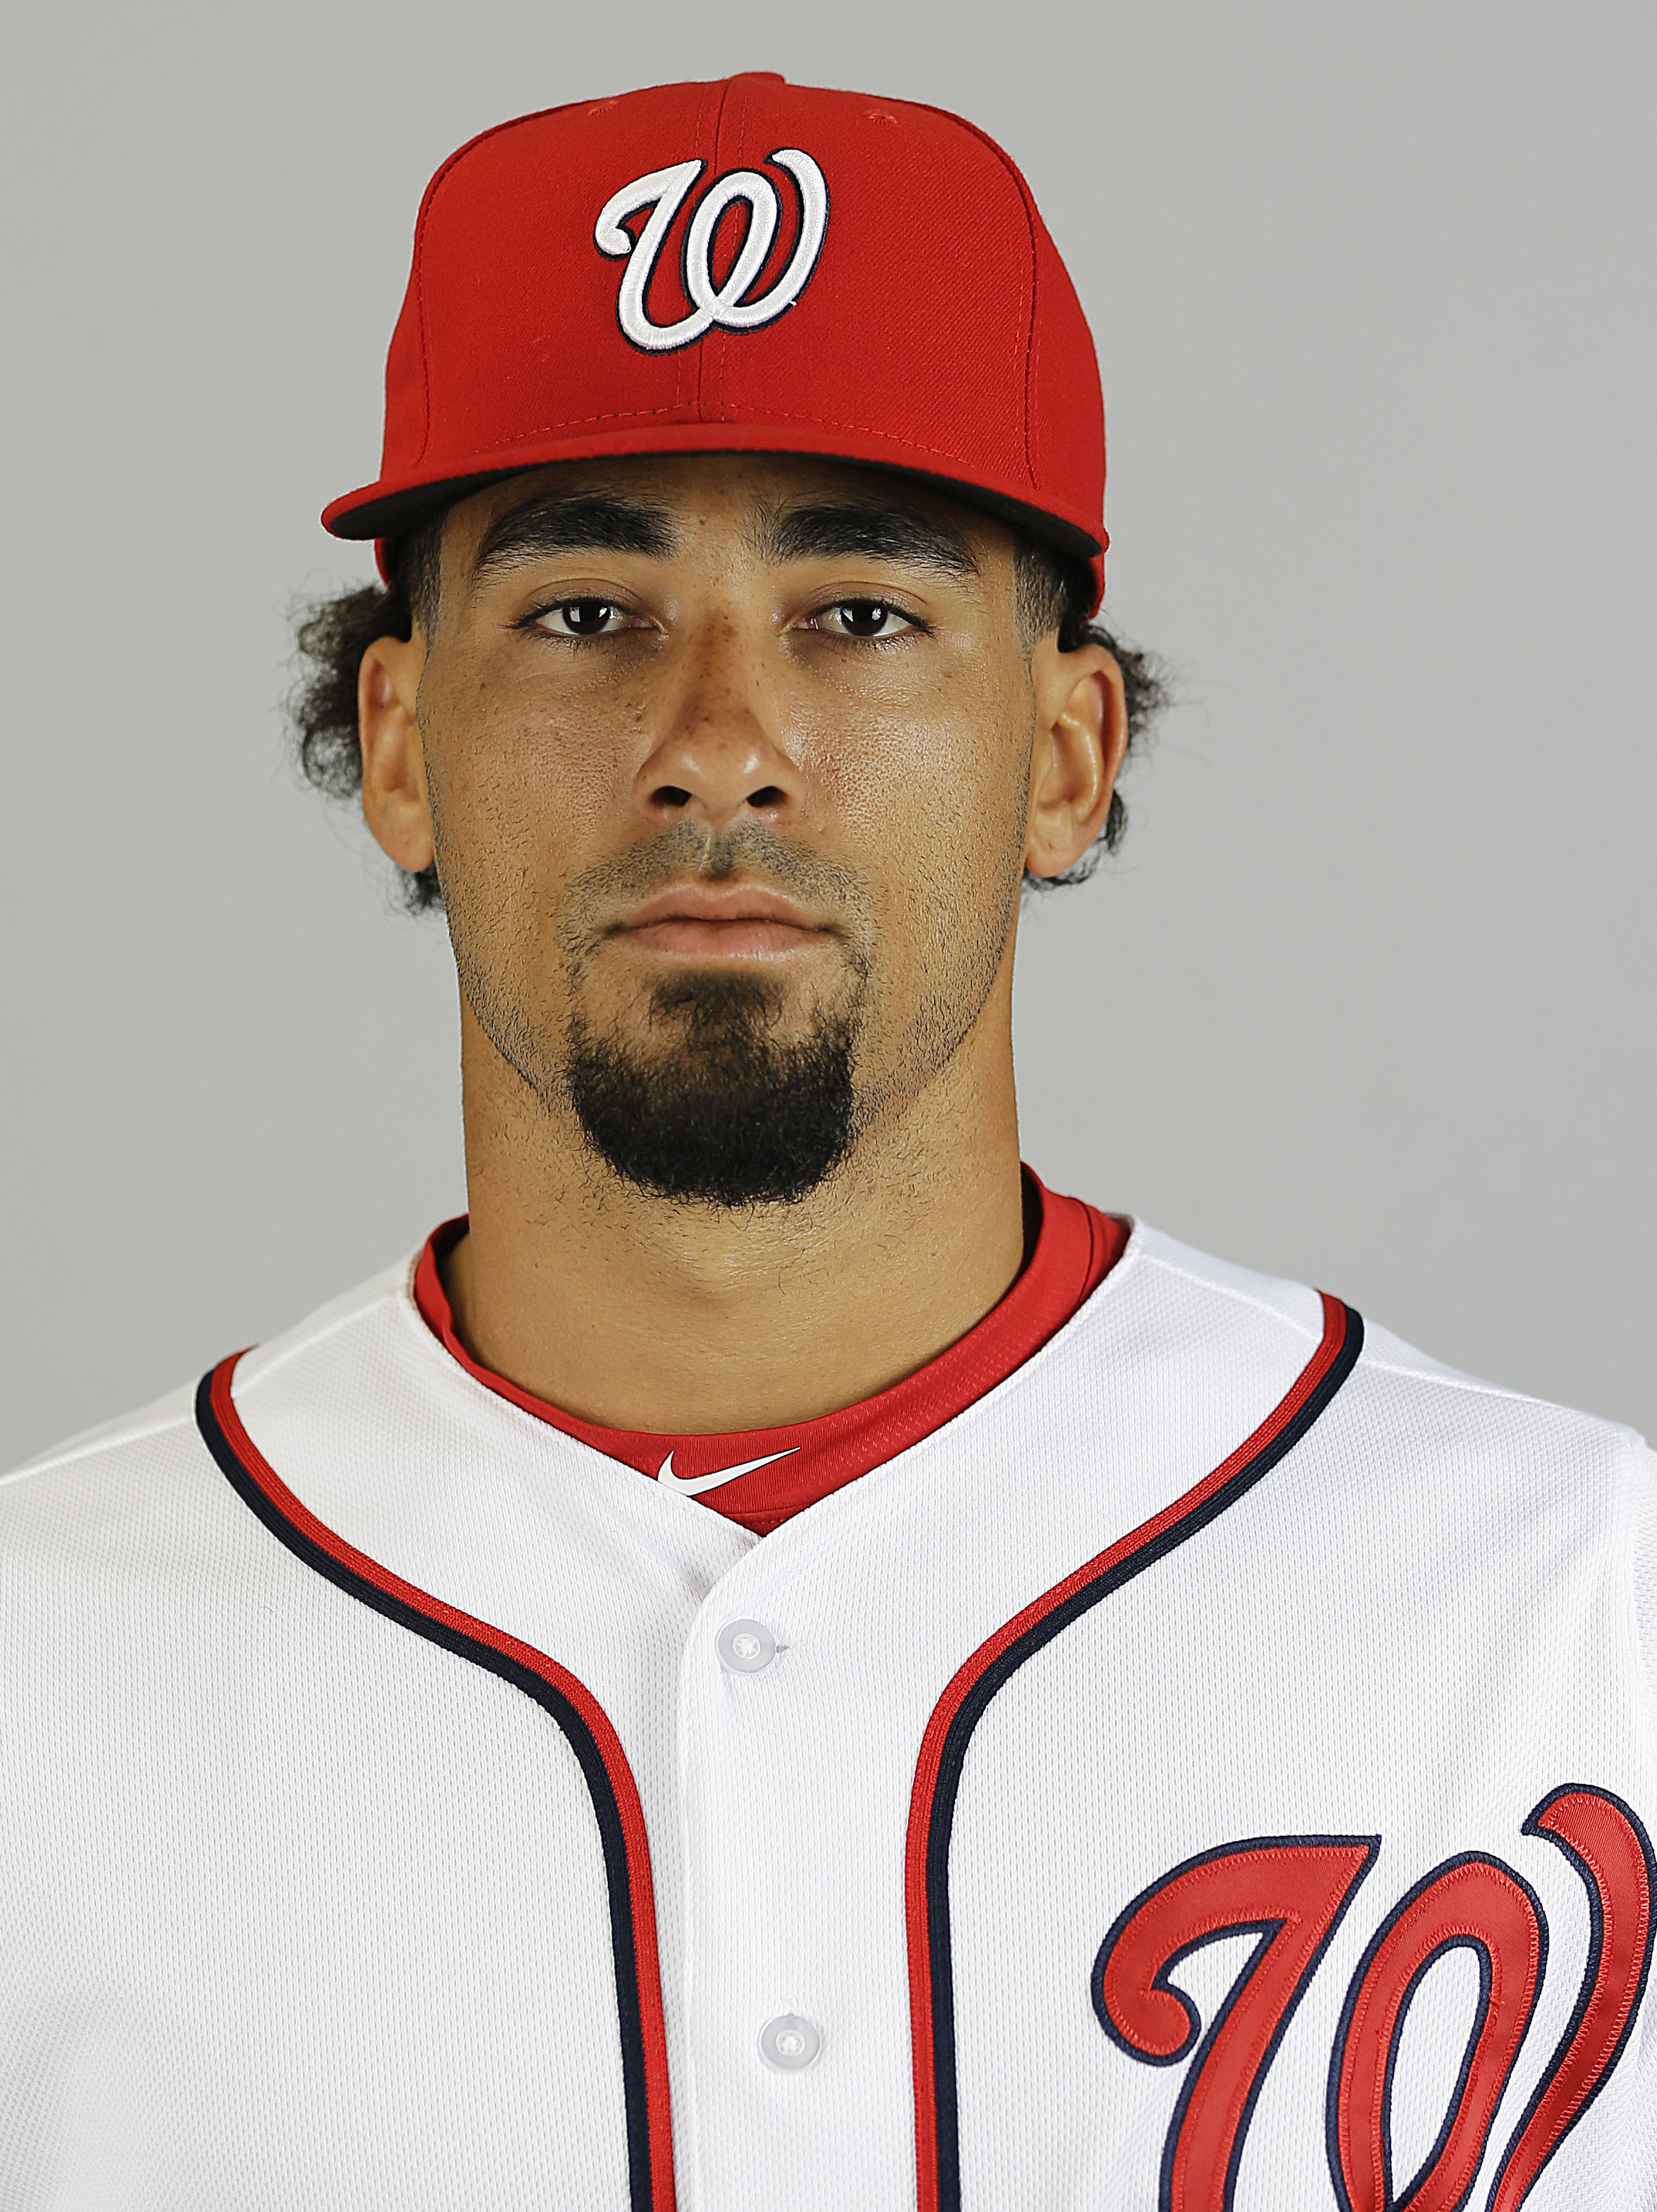 File-This is a 2015 file photo of Ian Desmond of the Washington Nationals baseball team. A baseball official with knowledge of the deal says free agent Desmond has agreed to a one-year deal with the Texas Rangers. The person spoke to The Associated Press